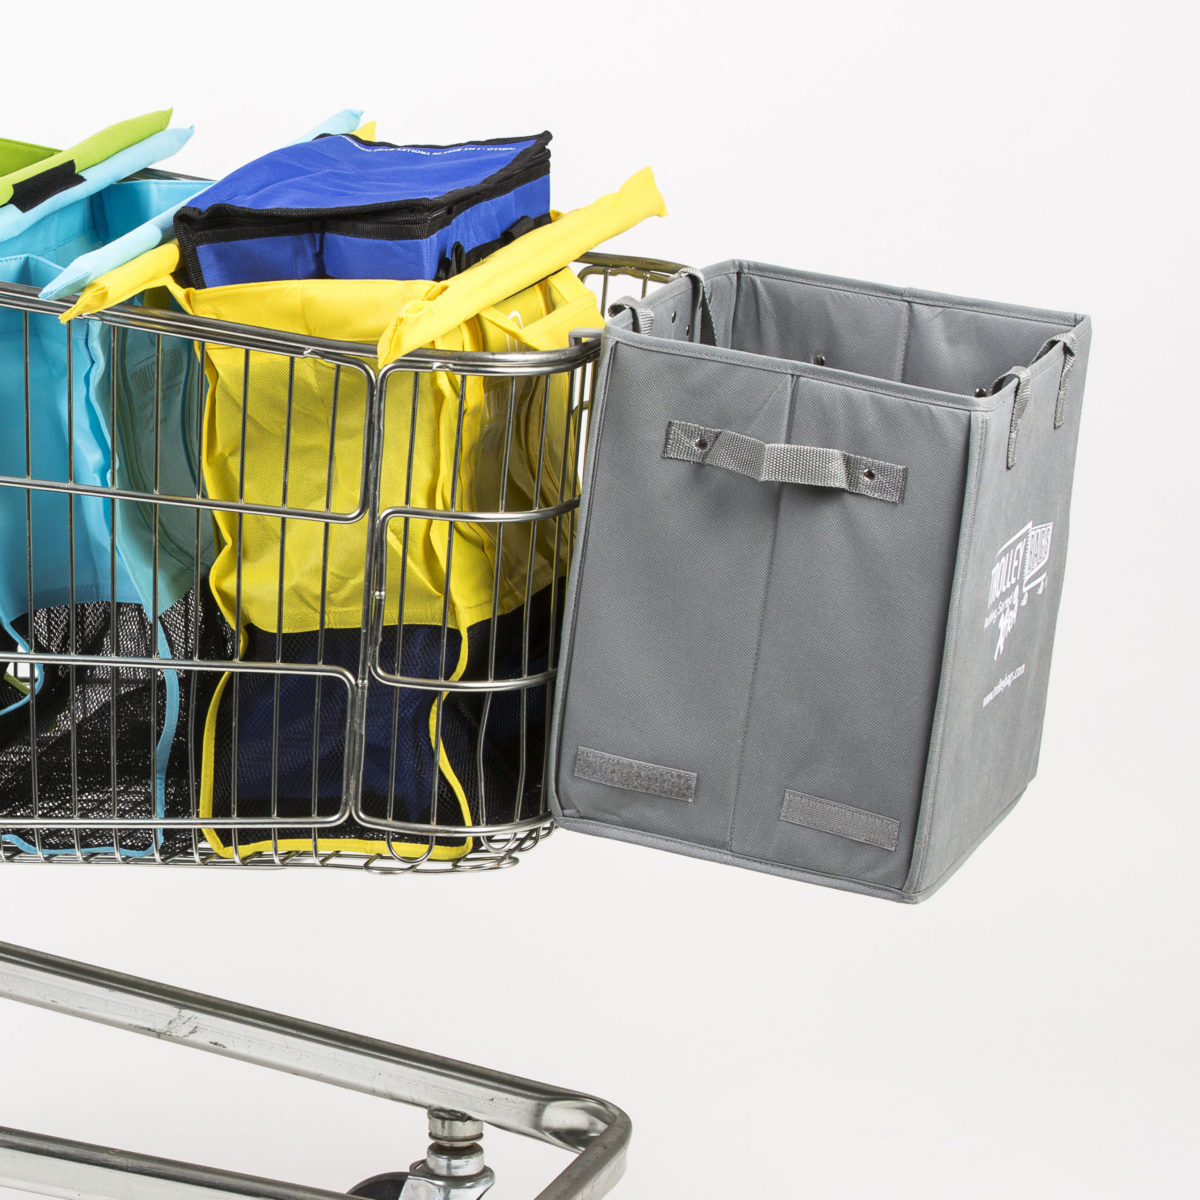 Trolley Bags Xtra also creates an extended trolley for those extra big shopping trips.